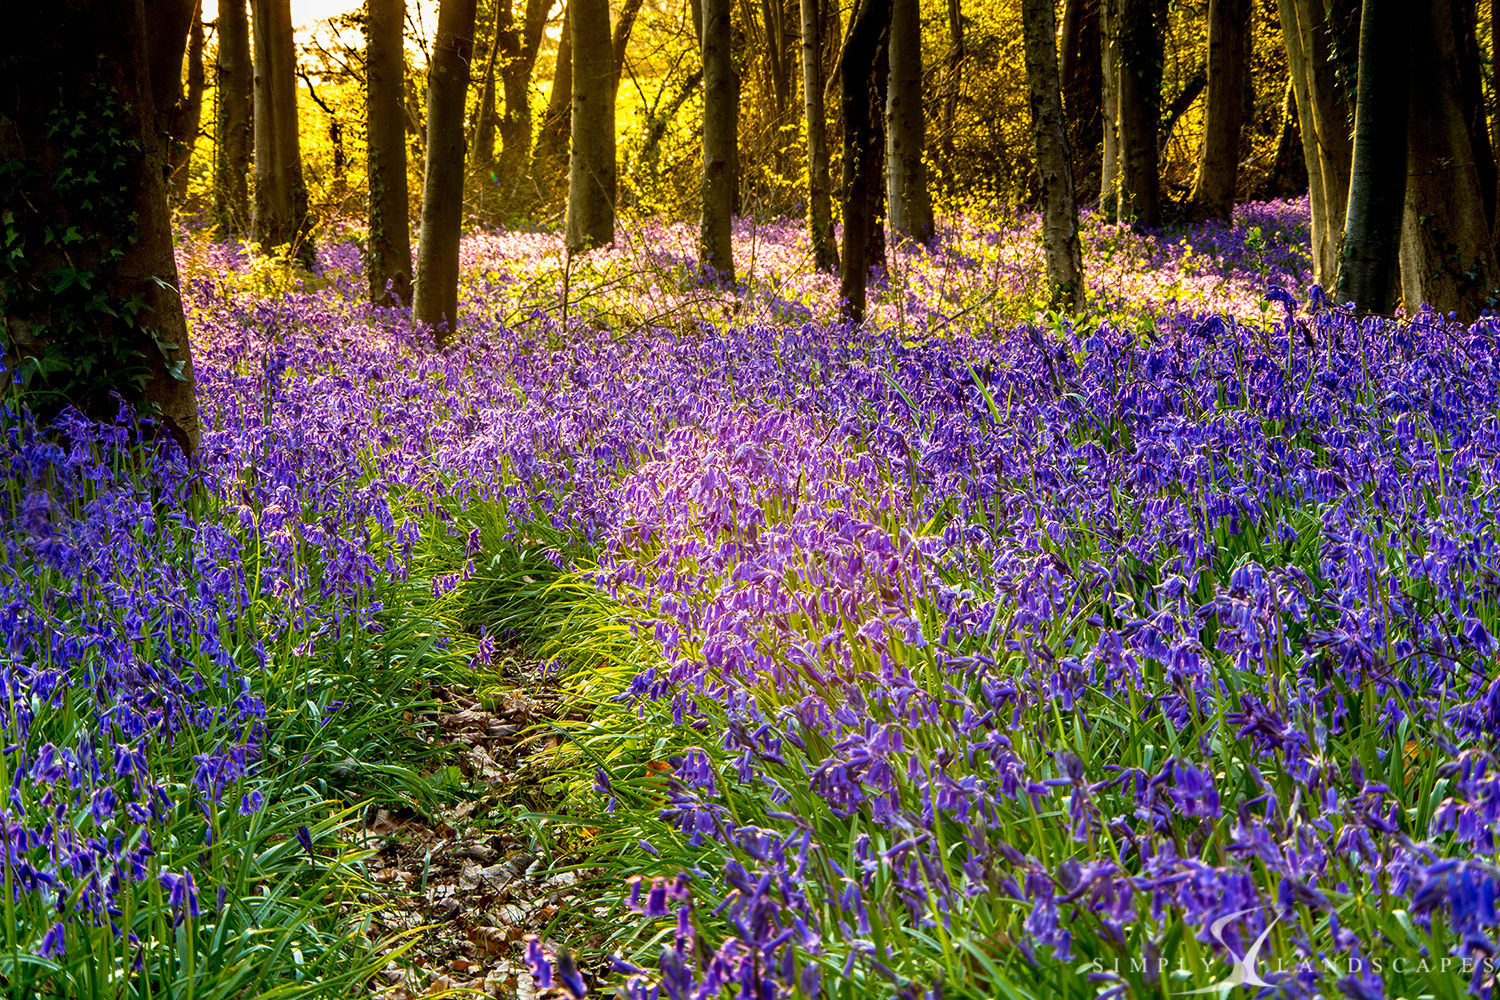 Blooming Woodlands - West Stoke Bluebells